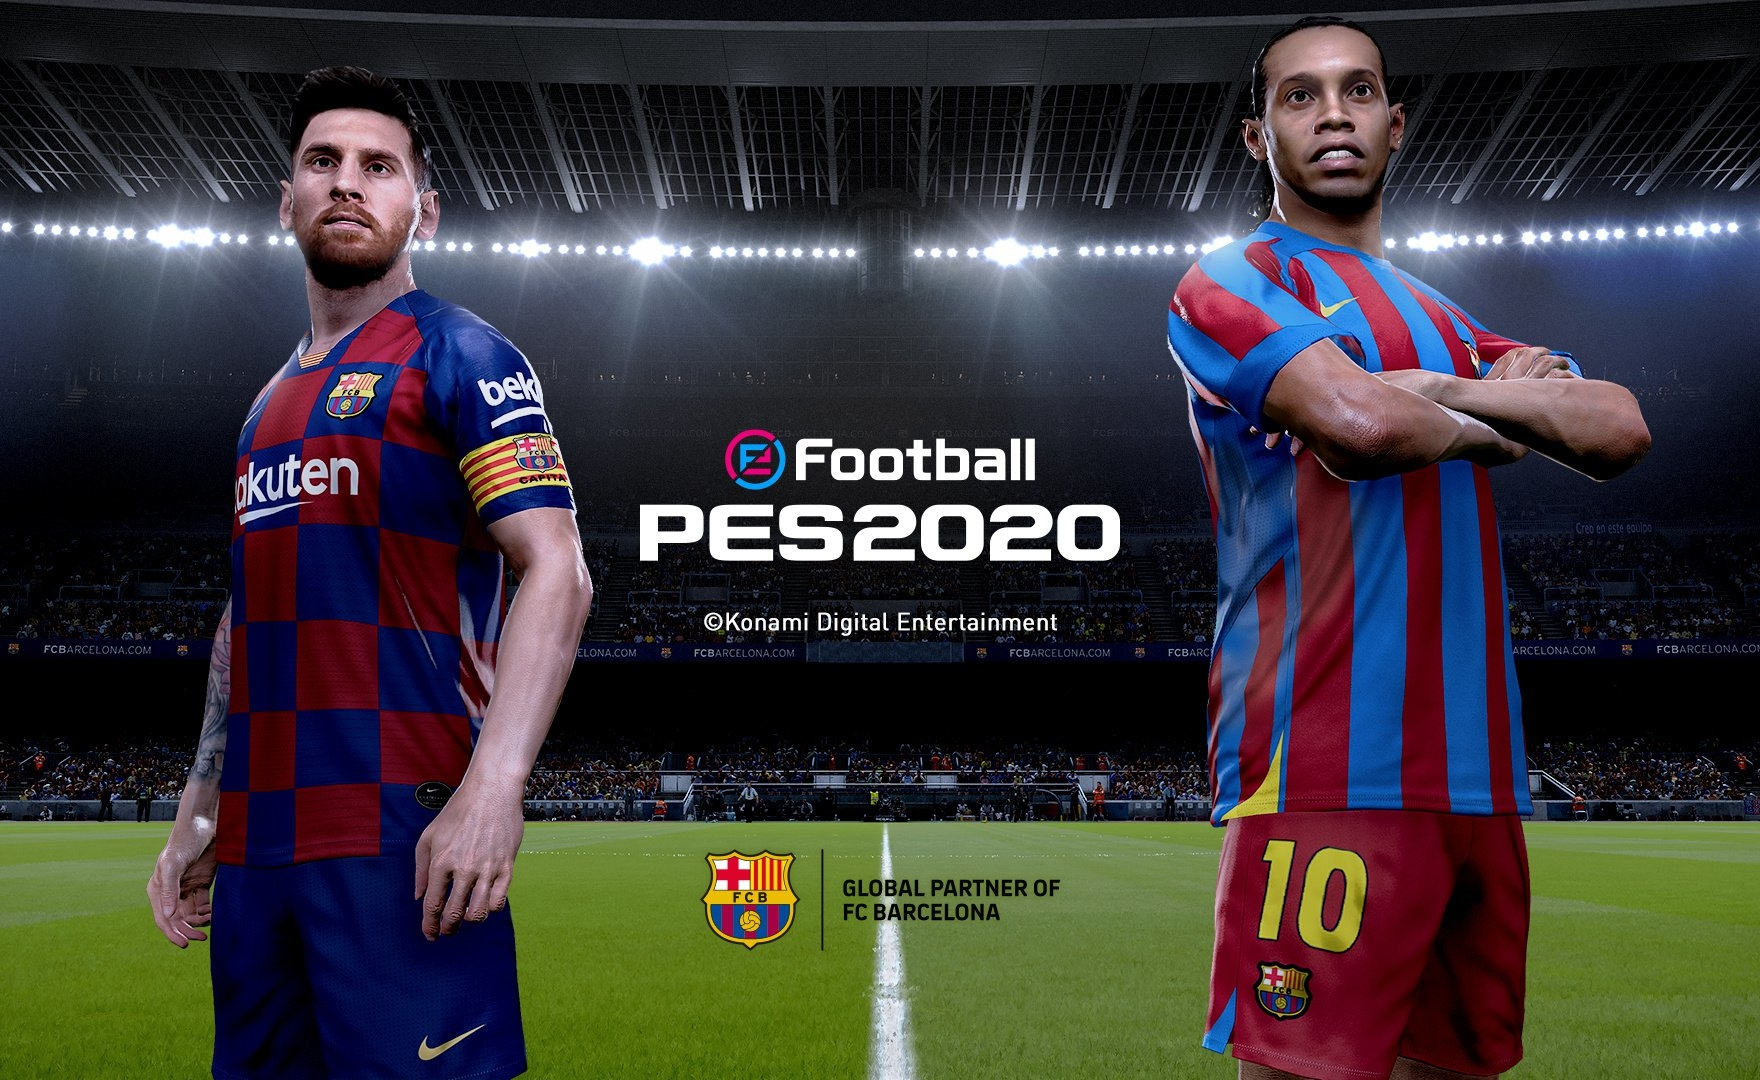 PES 2020: ecco il primo video di gameplay dell'E3 2019